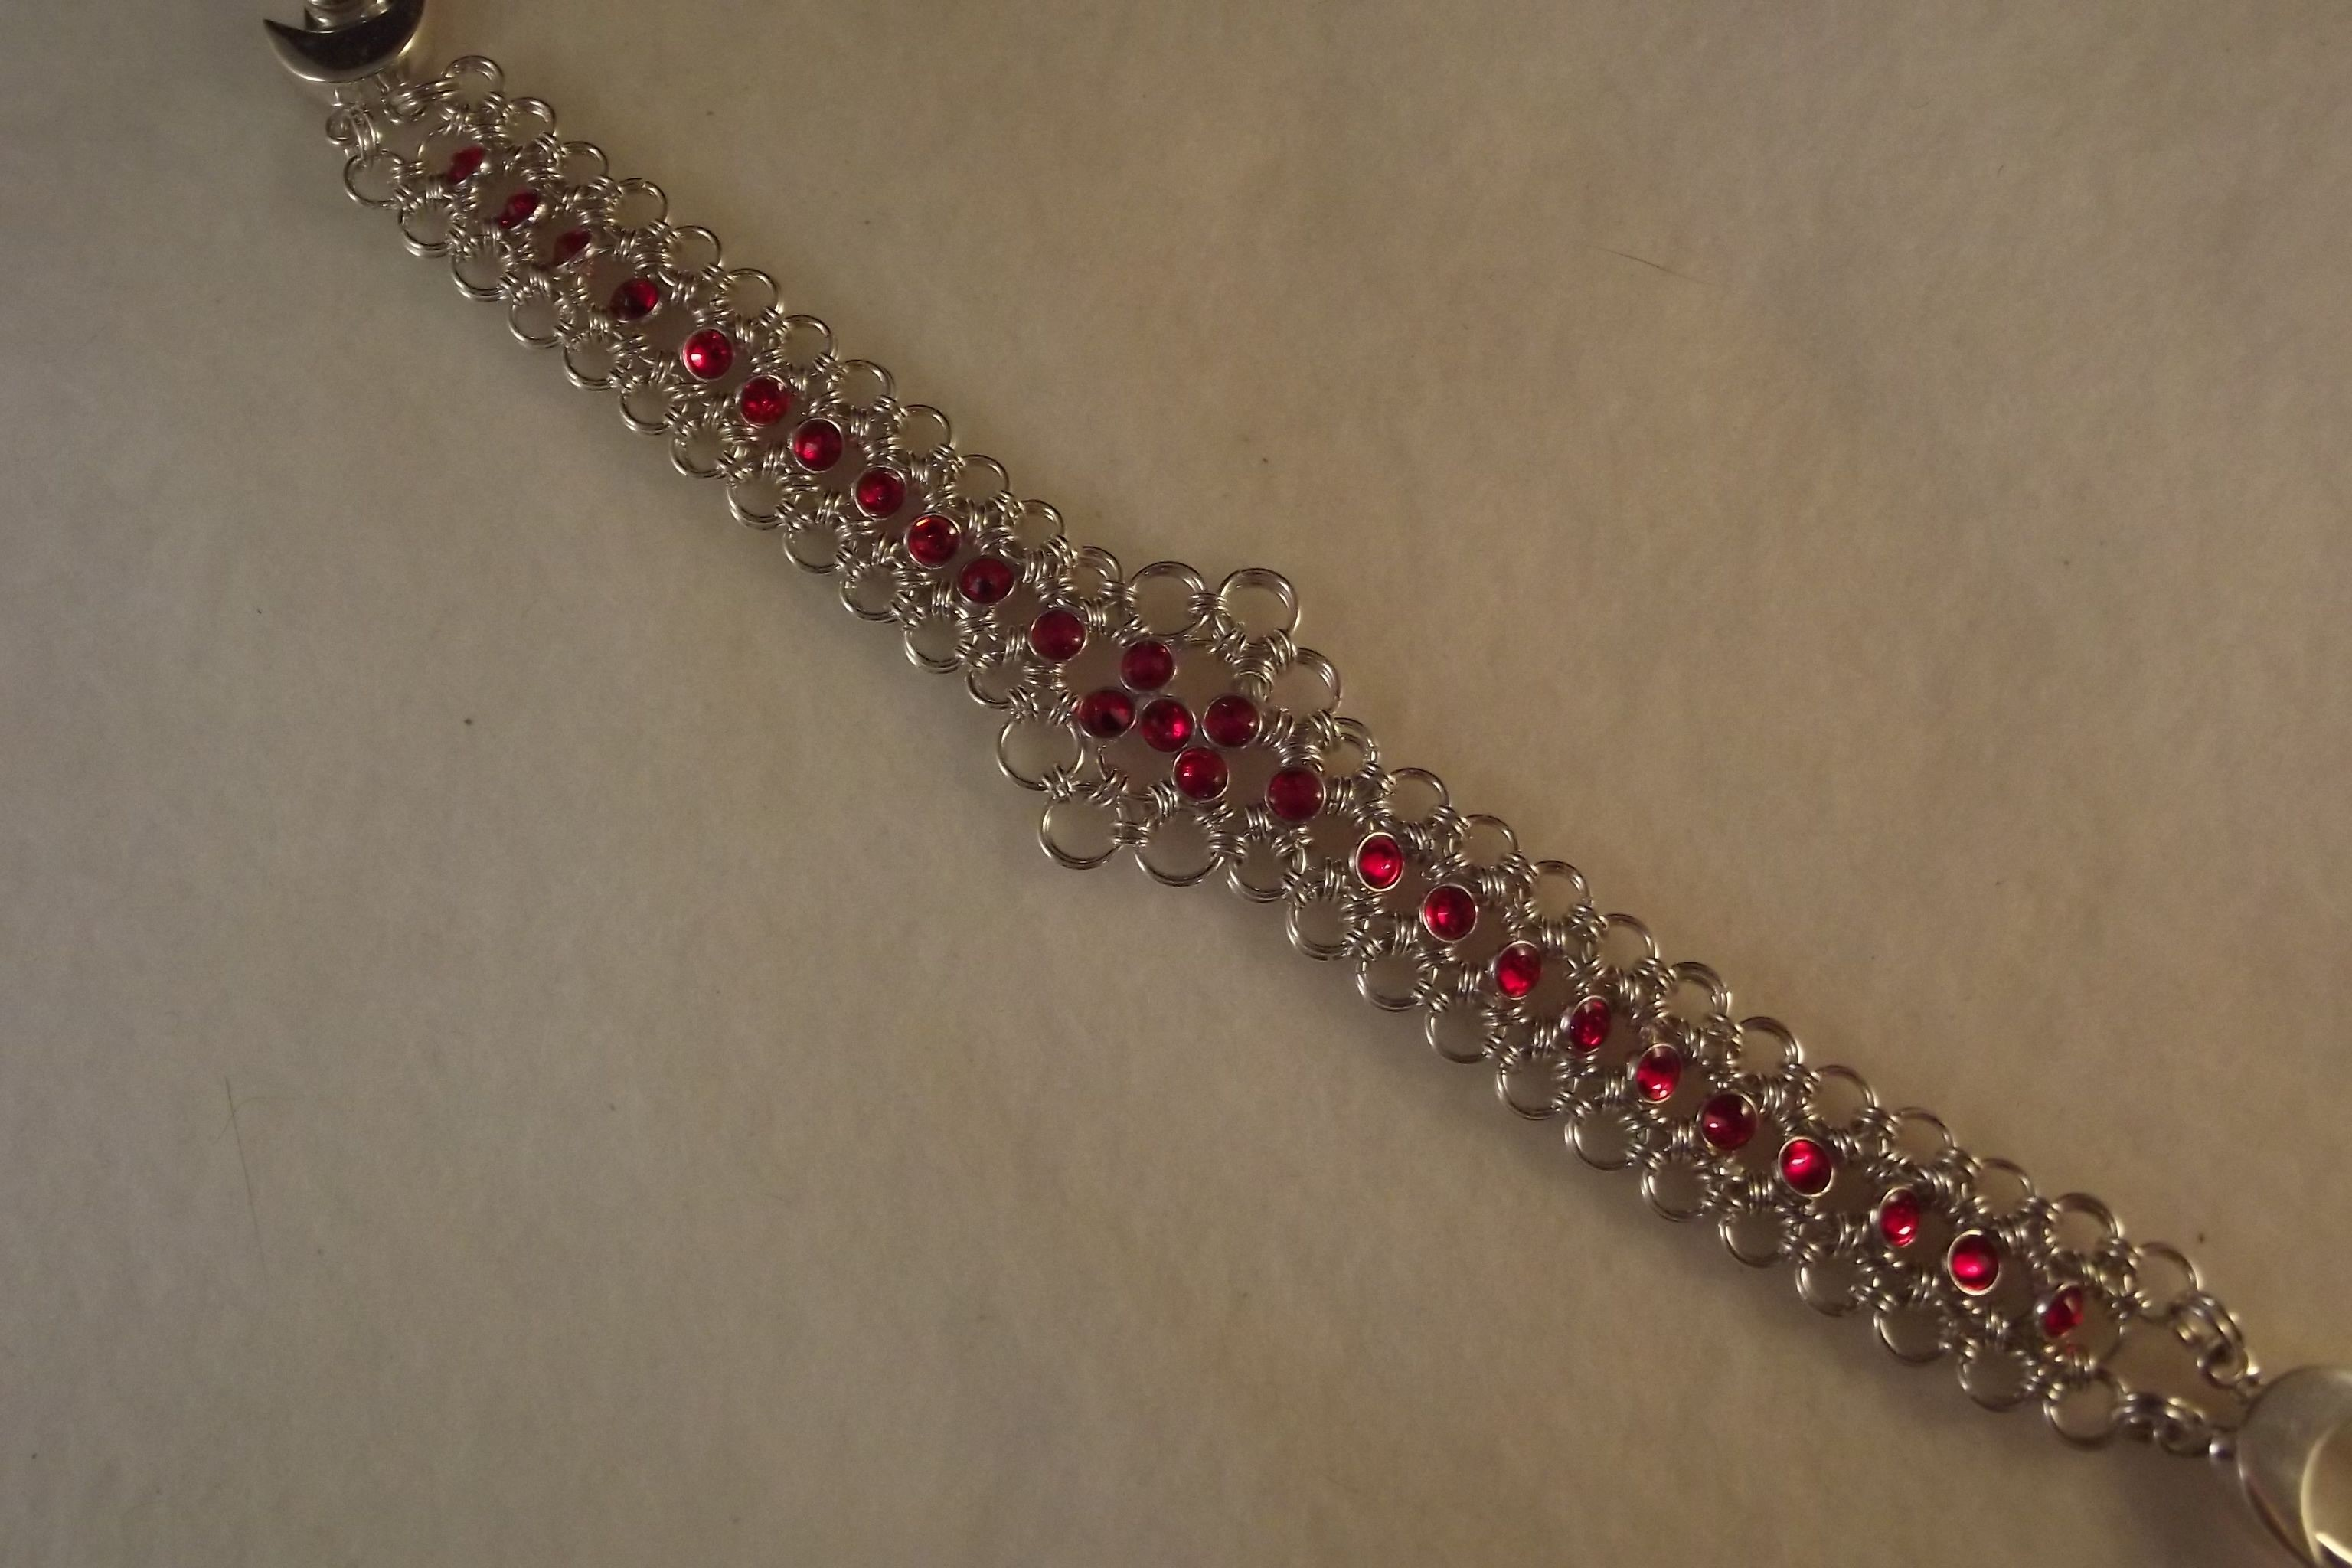 Crystalett Lace in Maille Bracelet